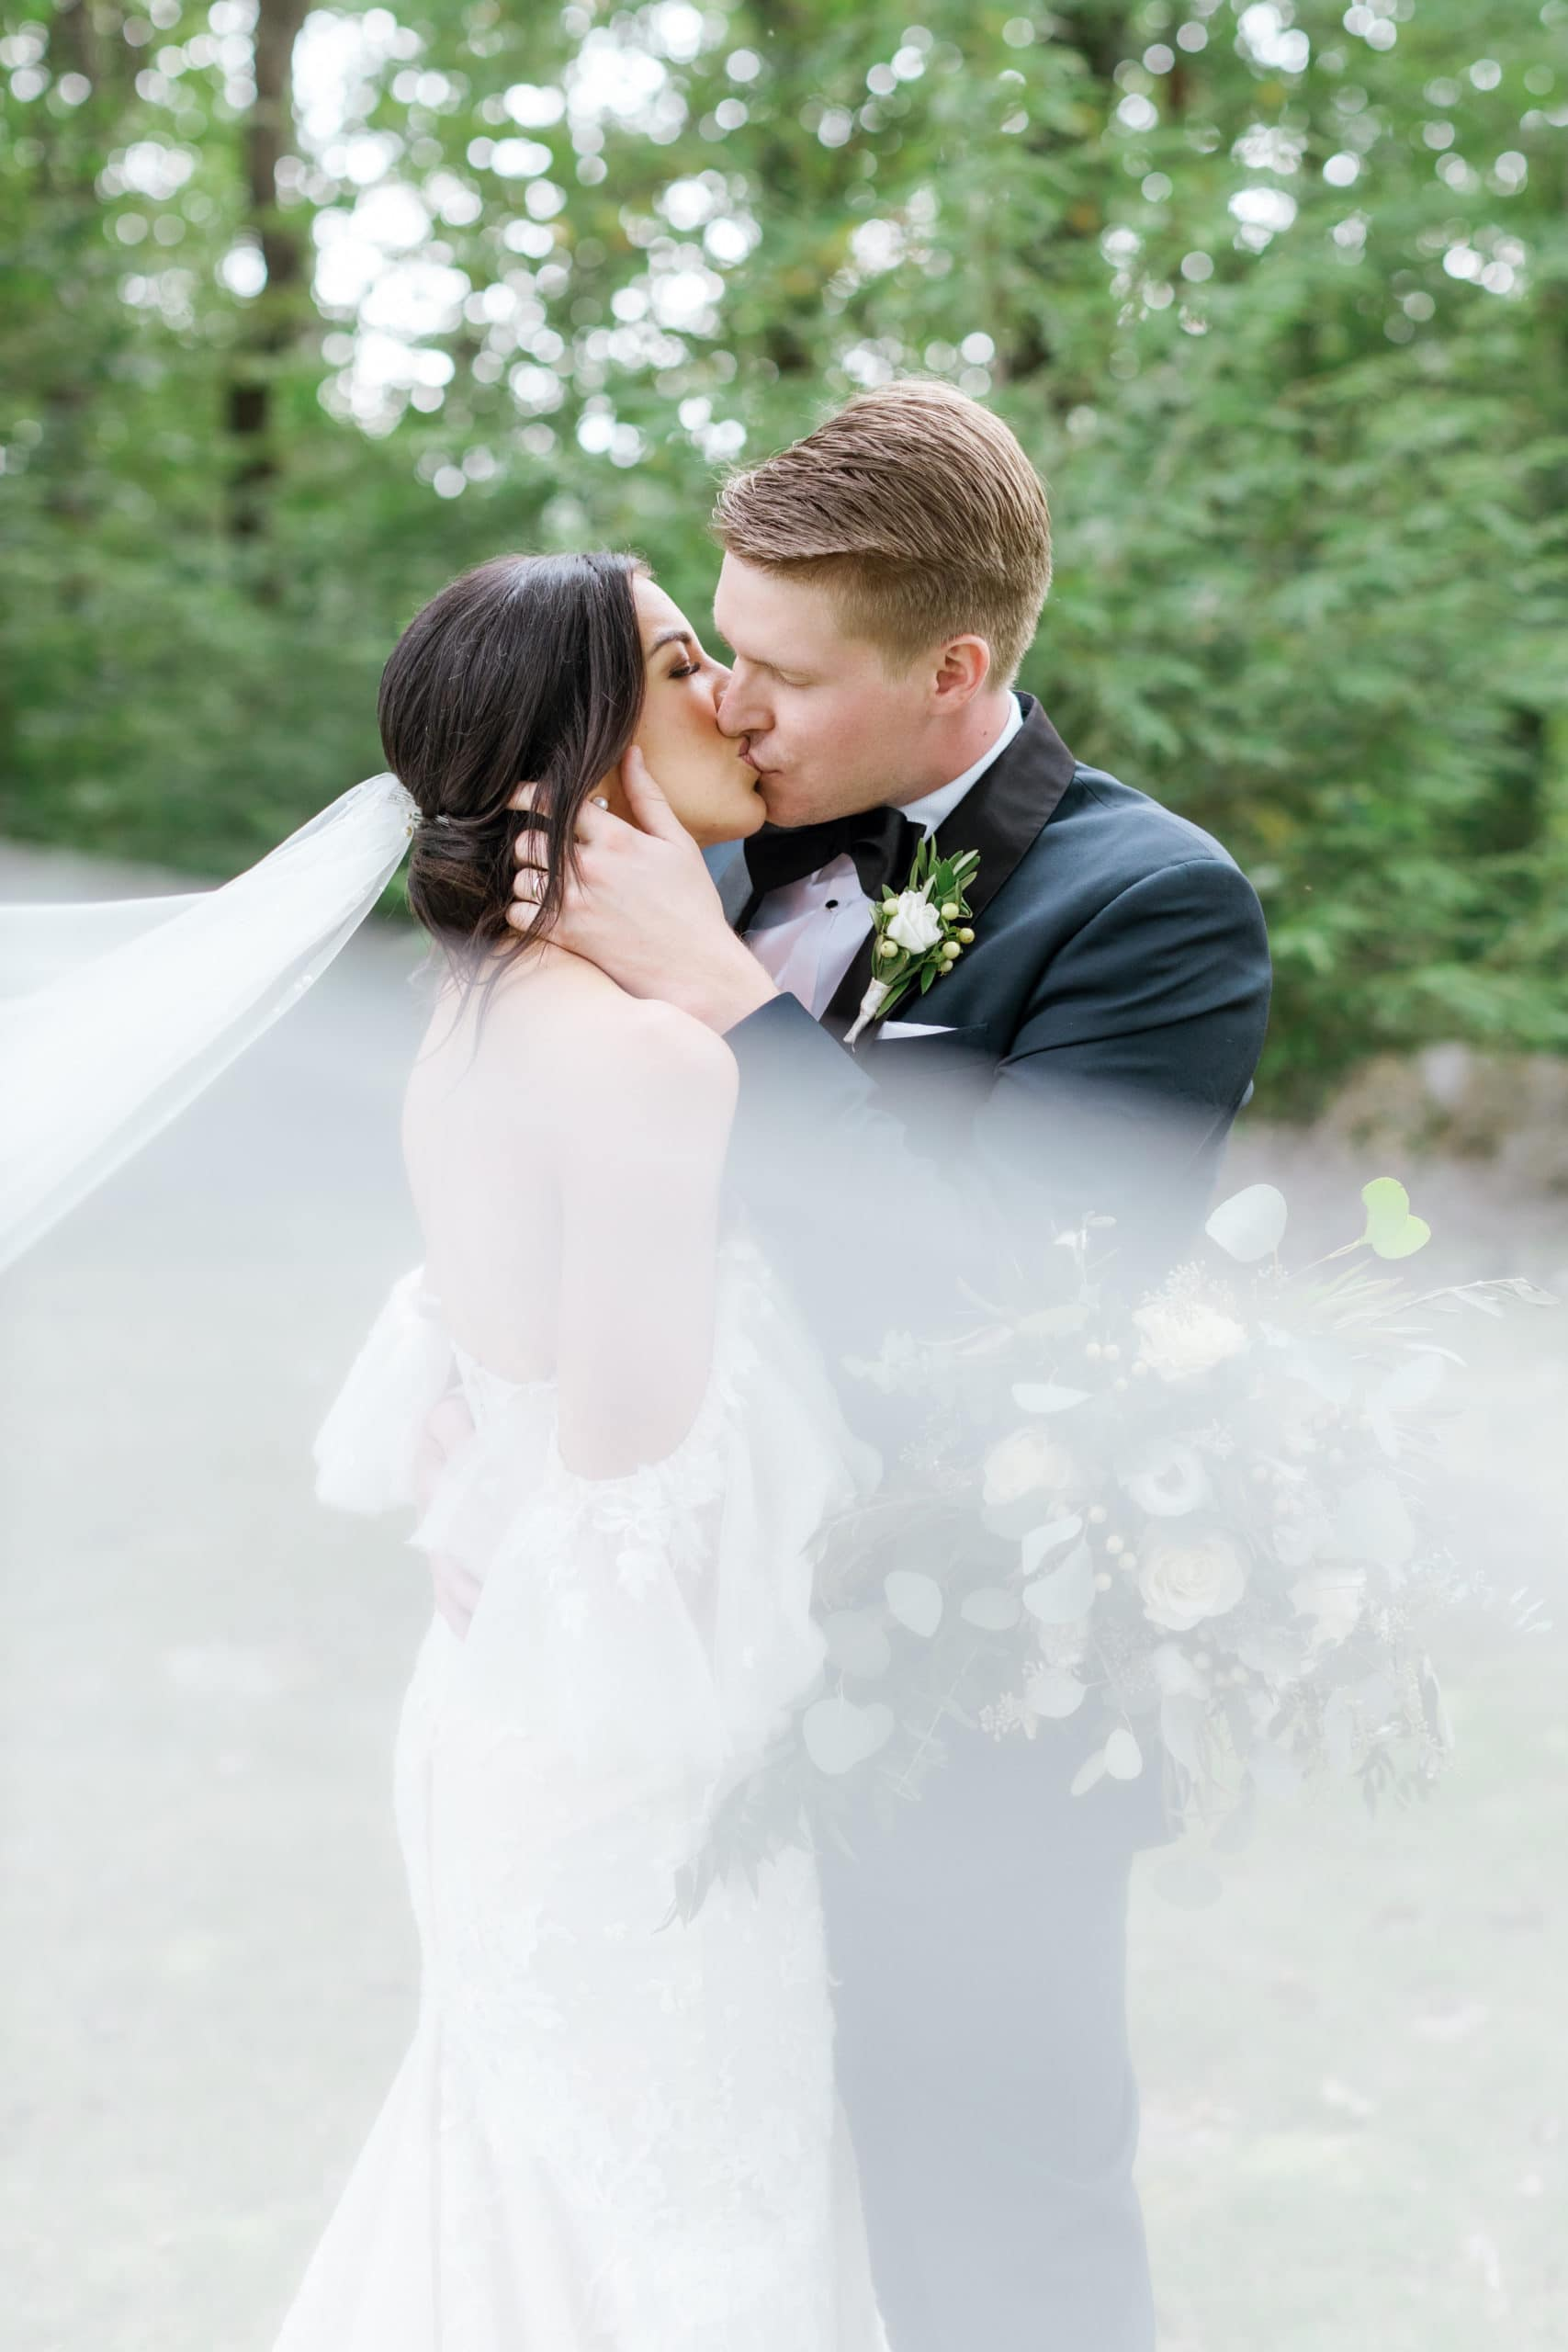 Outdoor Fall Seven Springs Wedding captured by Pittsburgh Wedding Photographer Lauren Renee